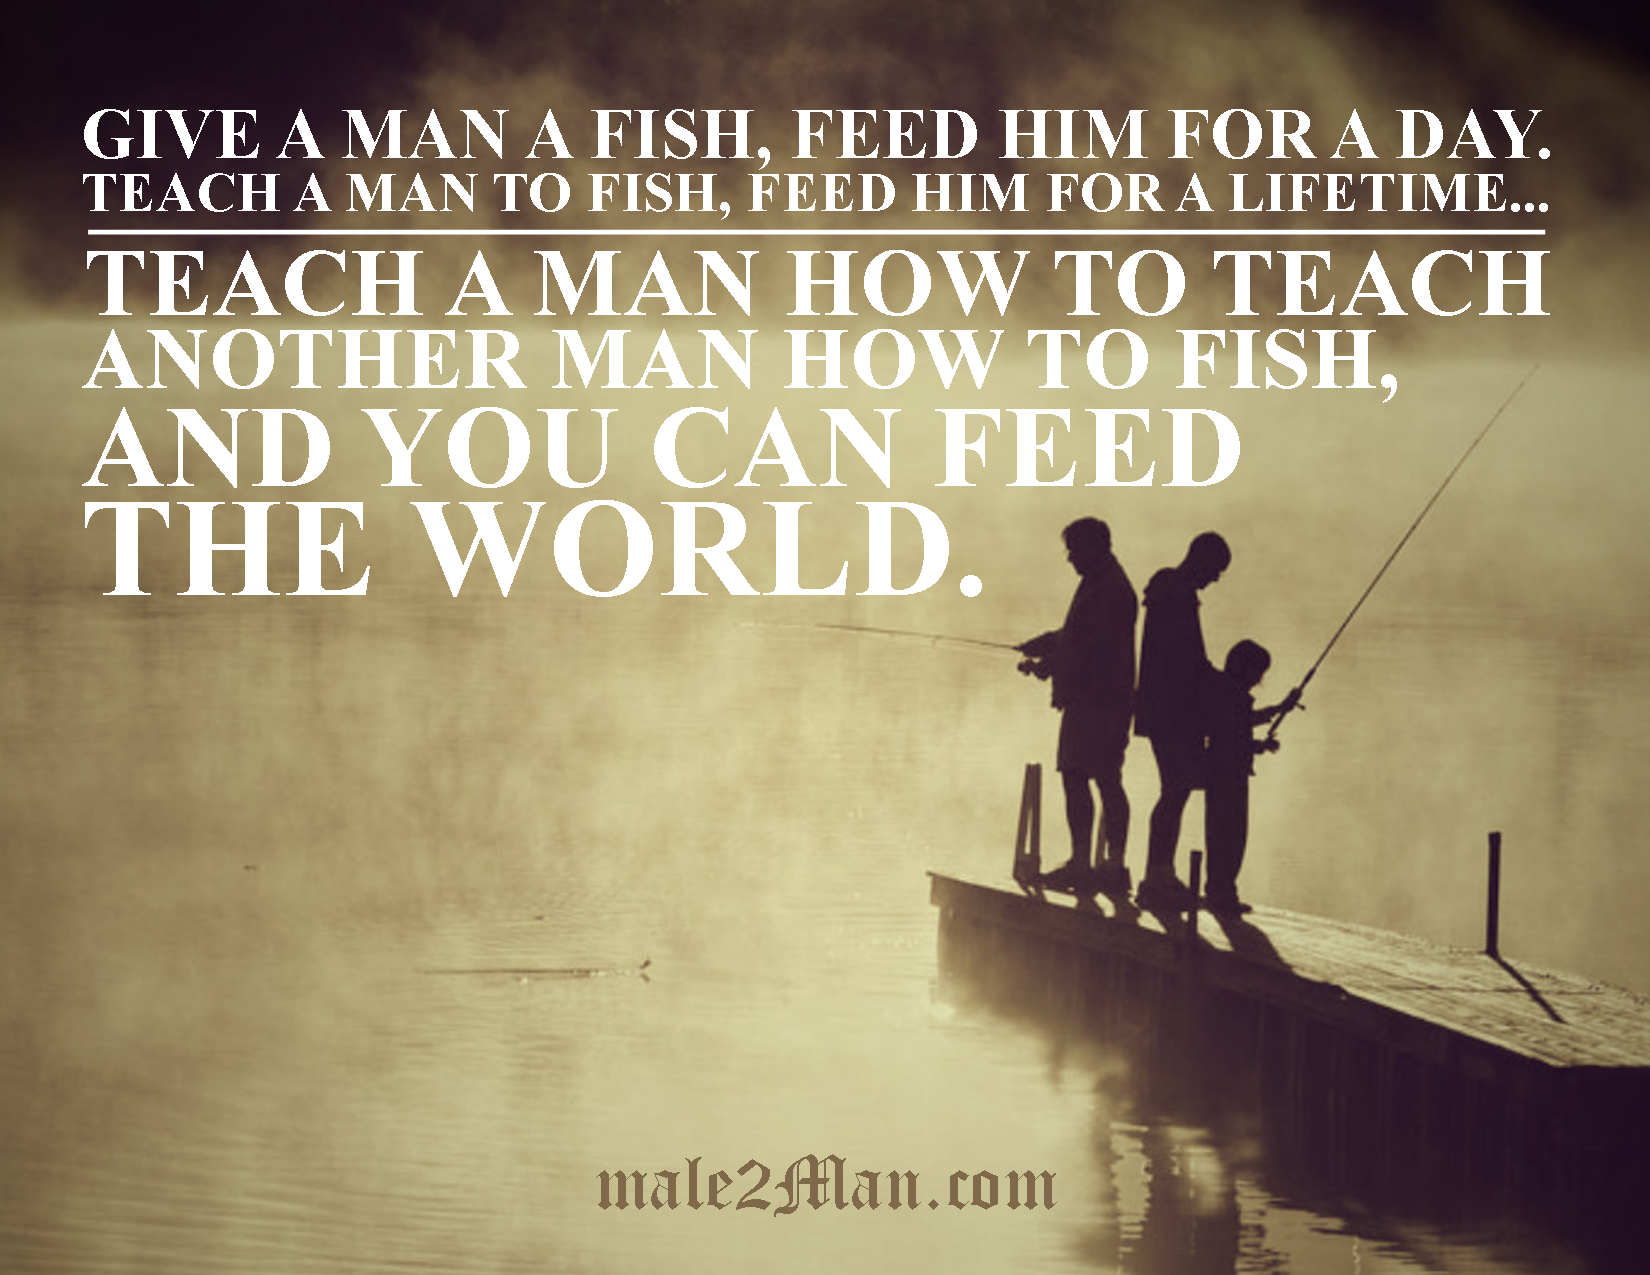 teach a man to fish male2man